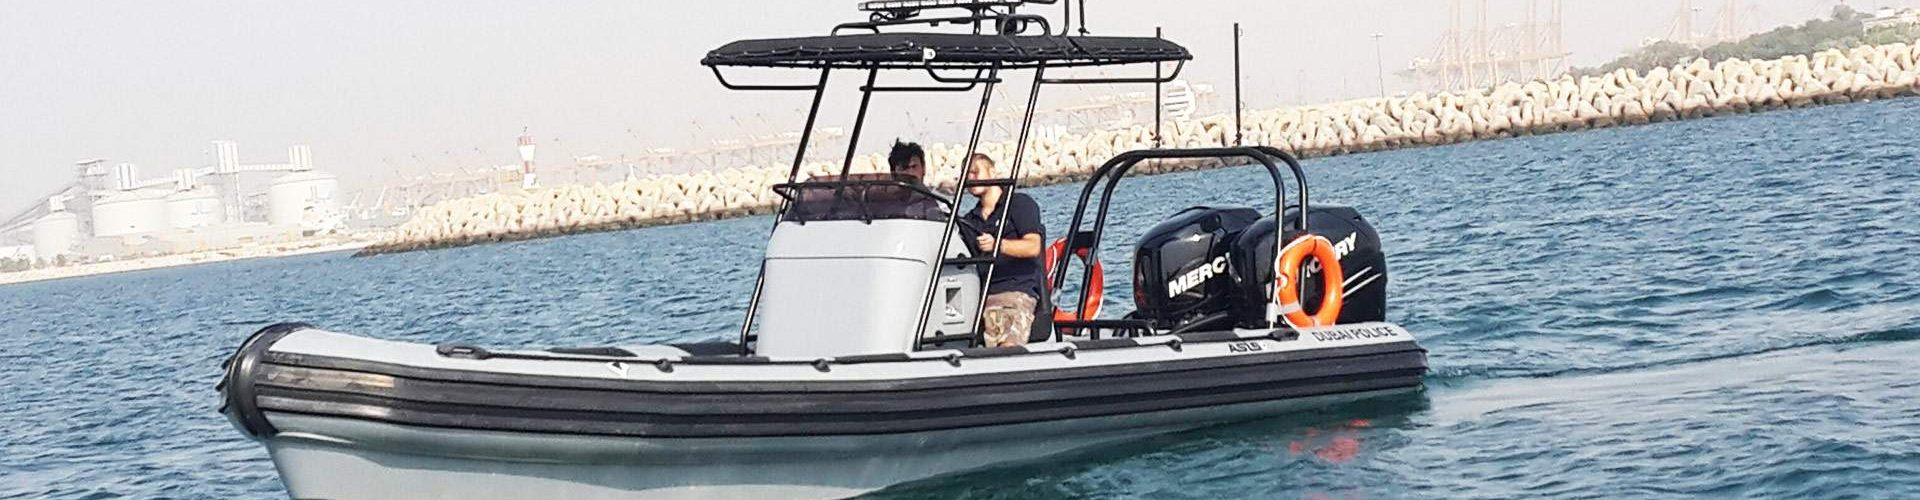 New-Police-SWAT-Boats-Ready-for-Duty